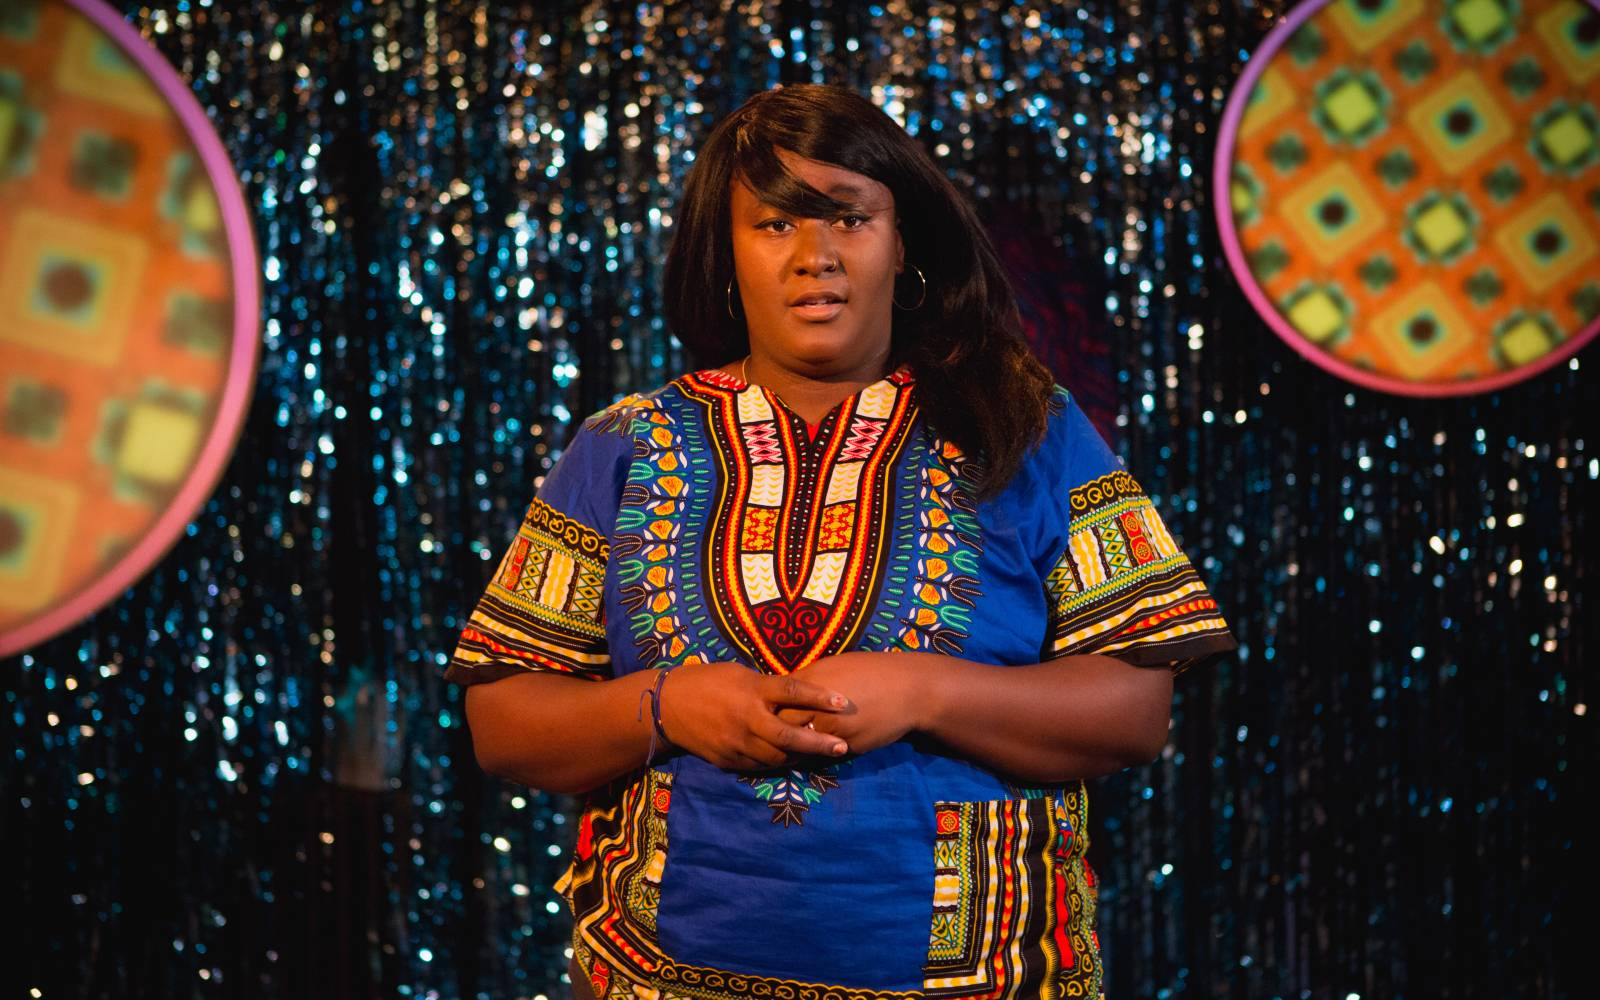 A sparkly blue tassled backdrop. A woman (Yolanda Mercy) is stood in the centre, wearing a dashiki top with bold blue, reds and yellows. Her hands are entwined in front of her and she's looking out into the audience. She's wearing large hoops in her ears and her hair is long, straight with a side fringe sweeping over her face.